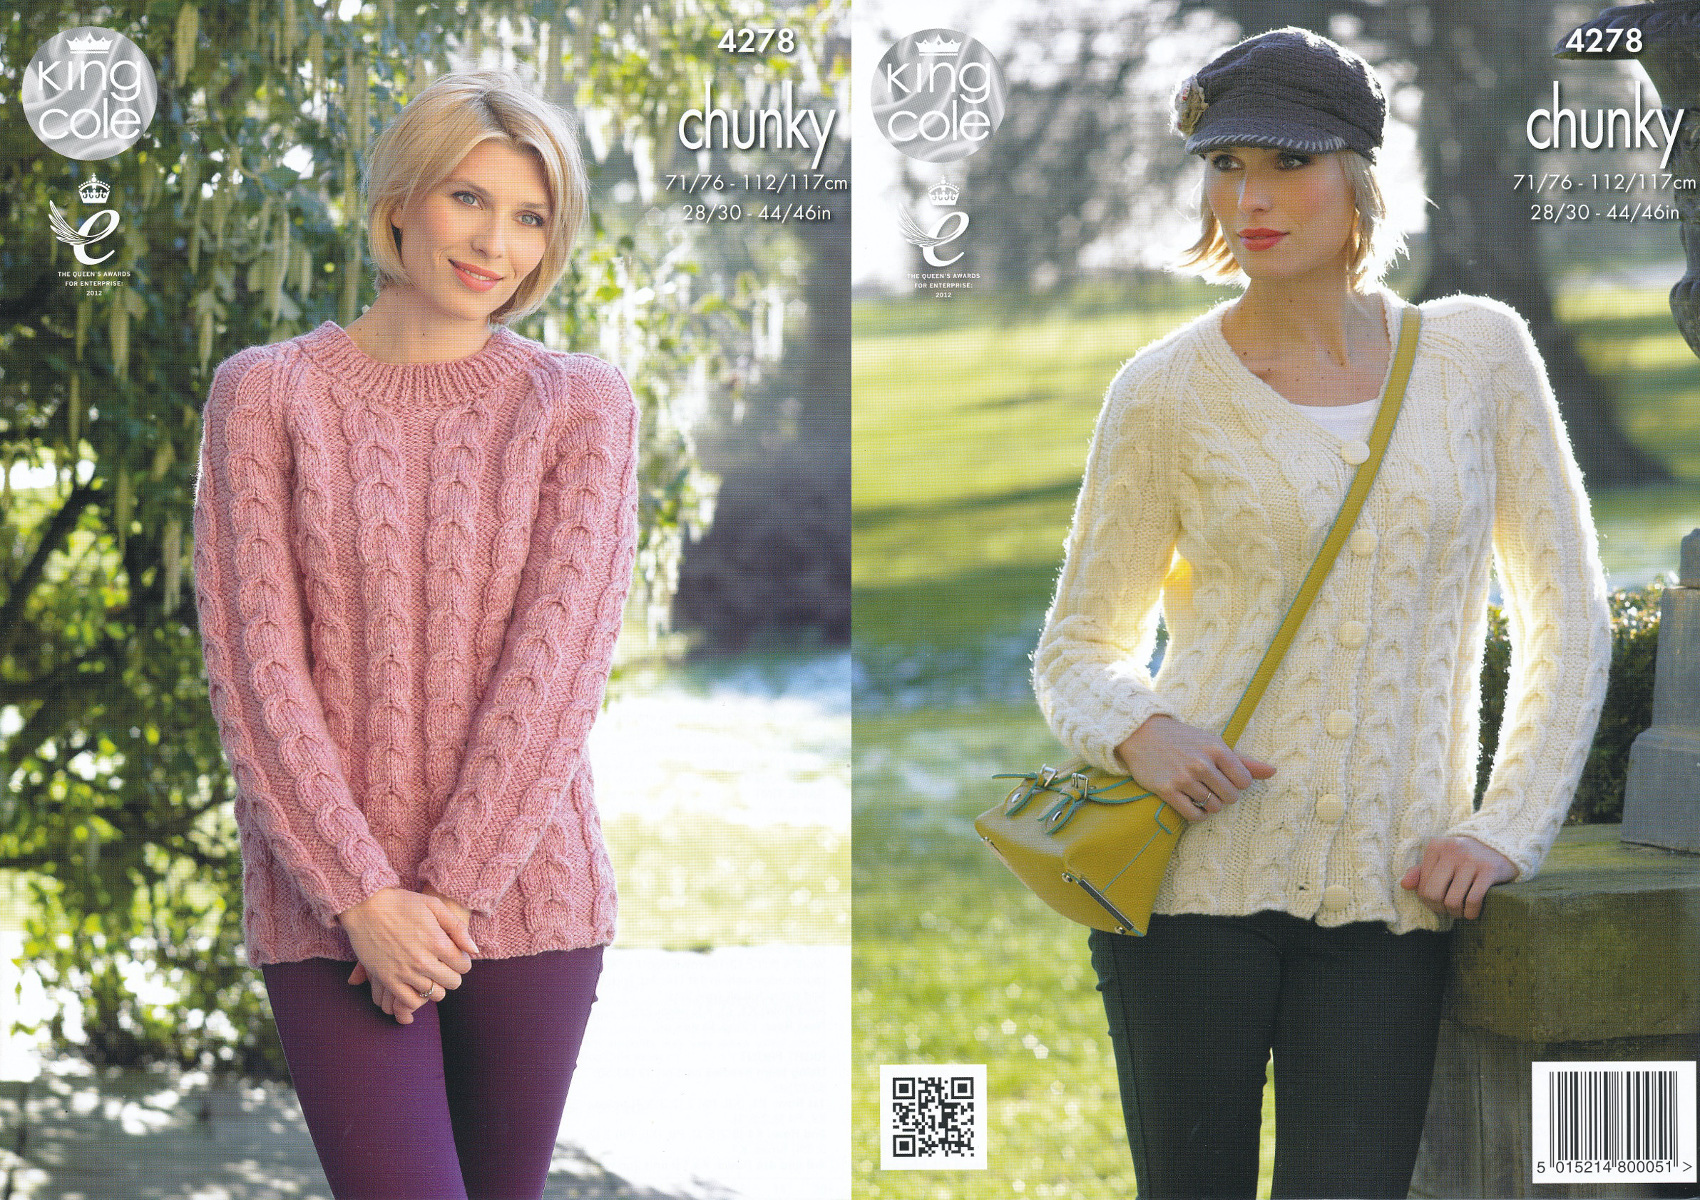 Knitting Jumper Pattern : Womens chunky knitting pattern king cole ladies cable knit